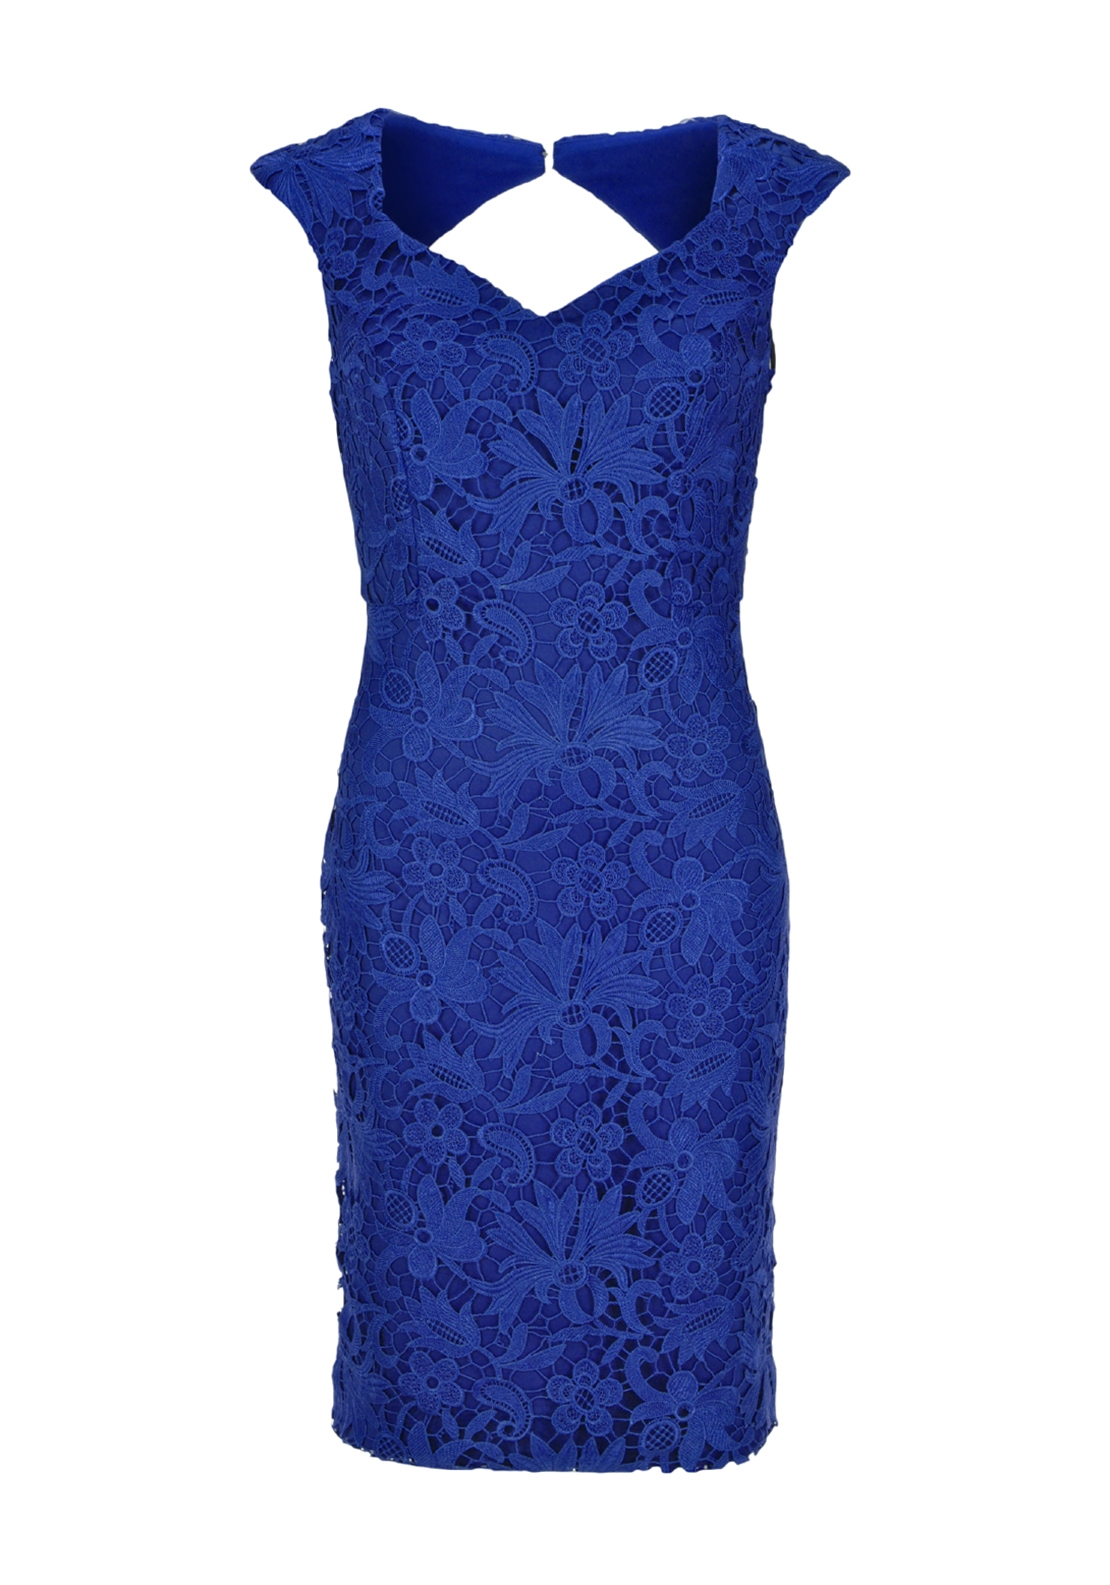 Sonia Pena Guipure Lace Overlay Pencil Dress with Shawl, Royal Blue